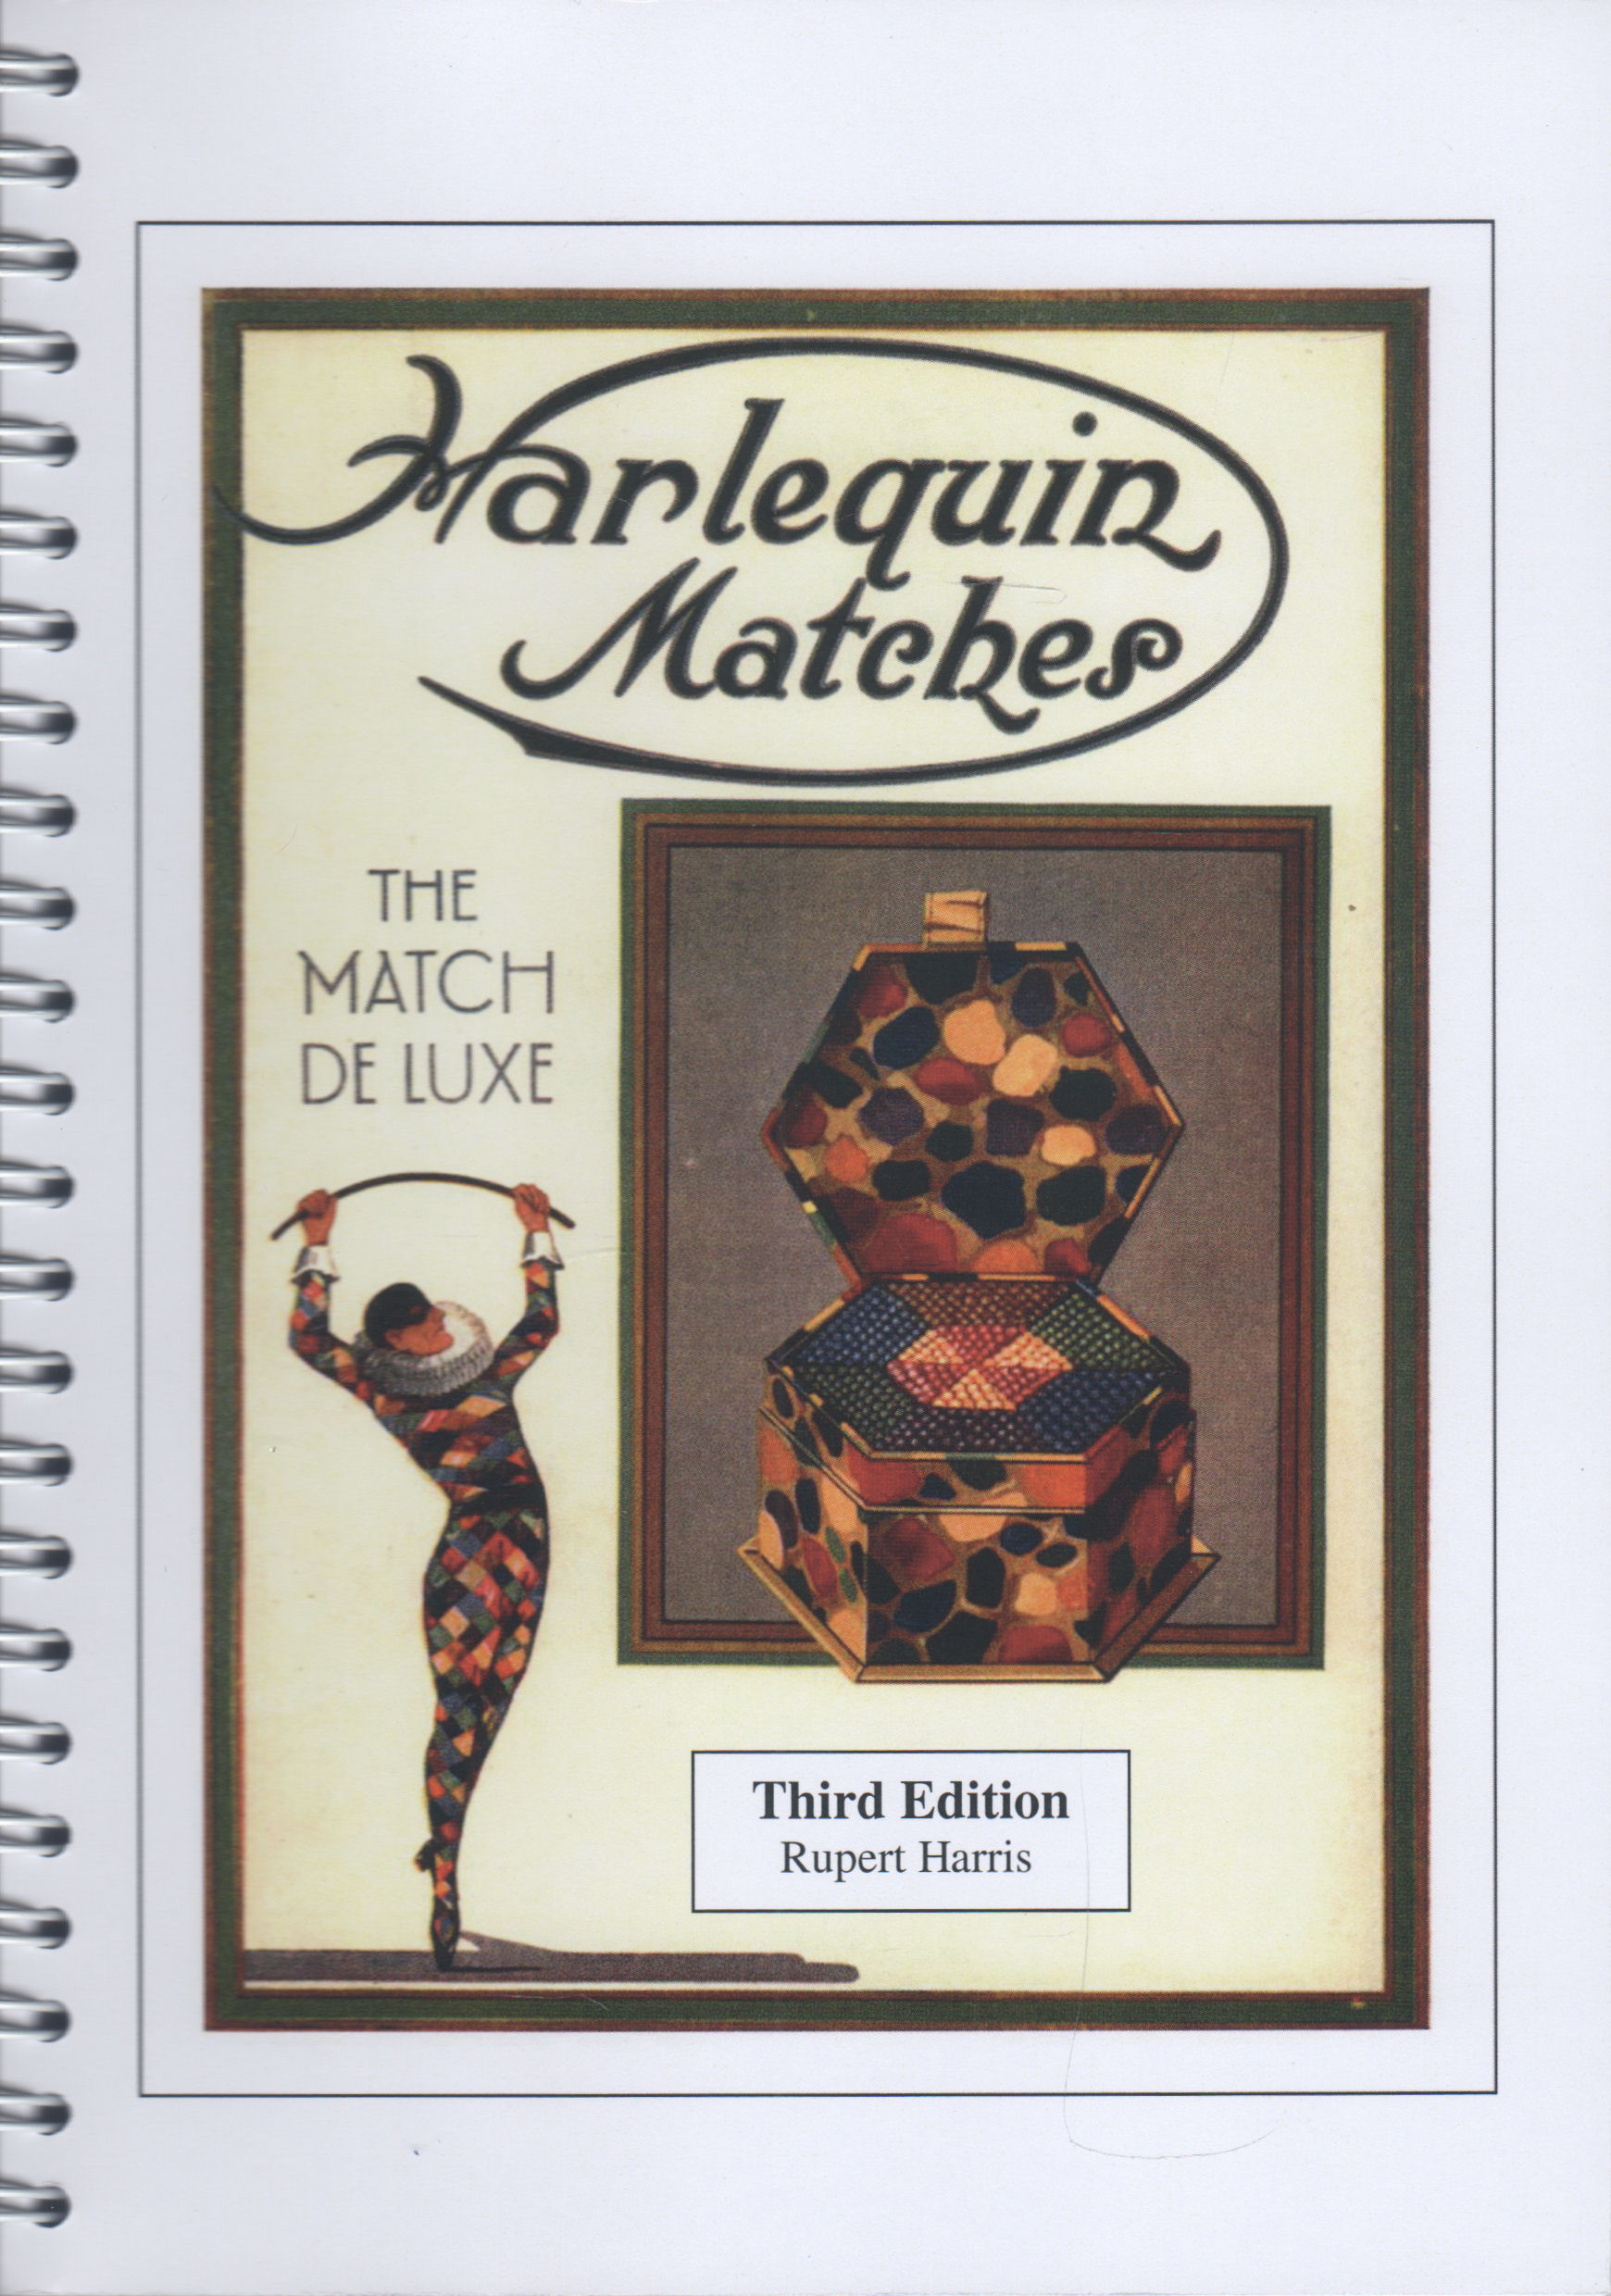 Harlequin Matches Third Edition